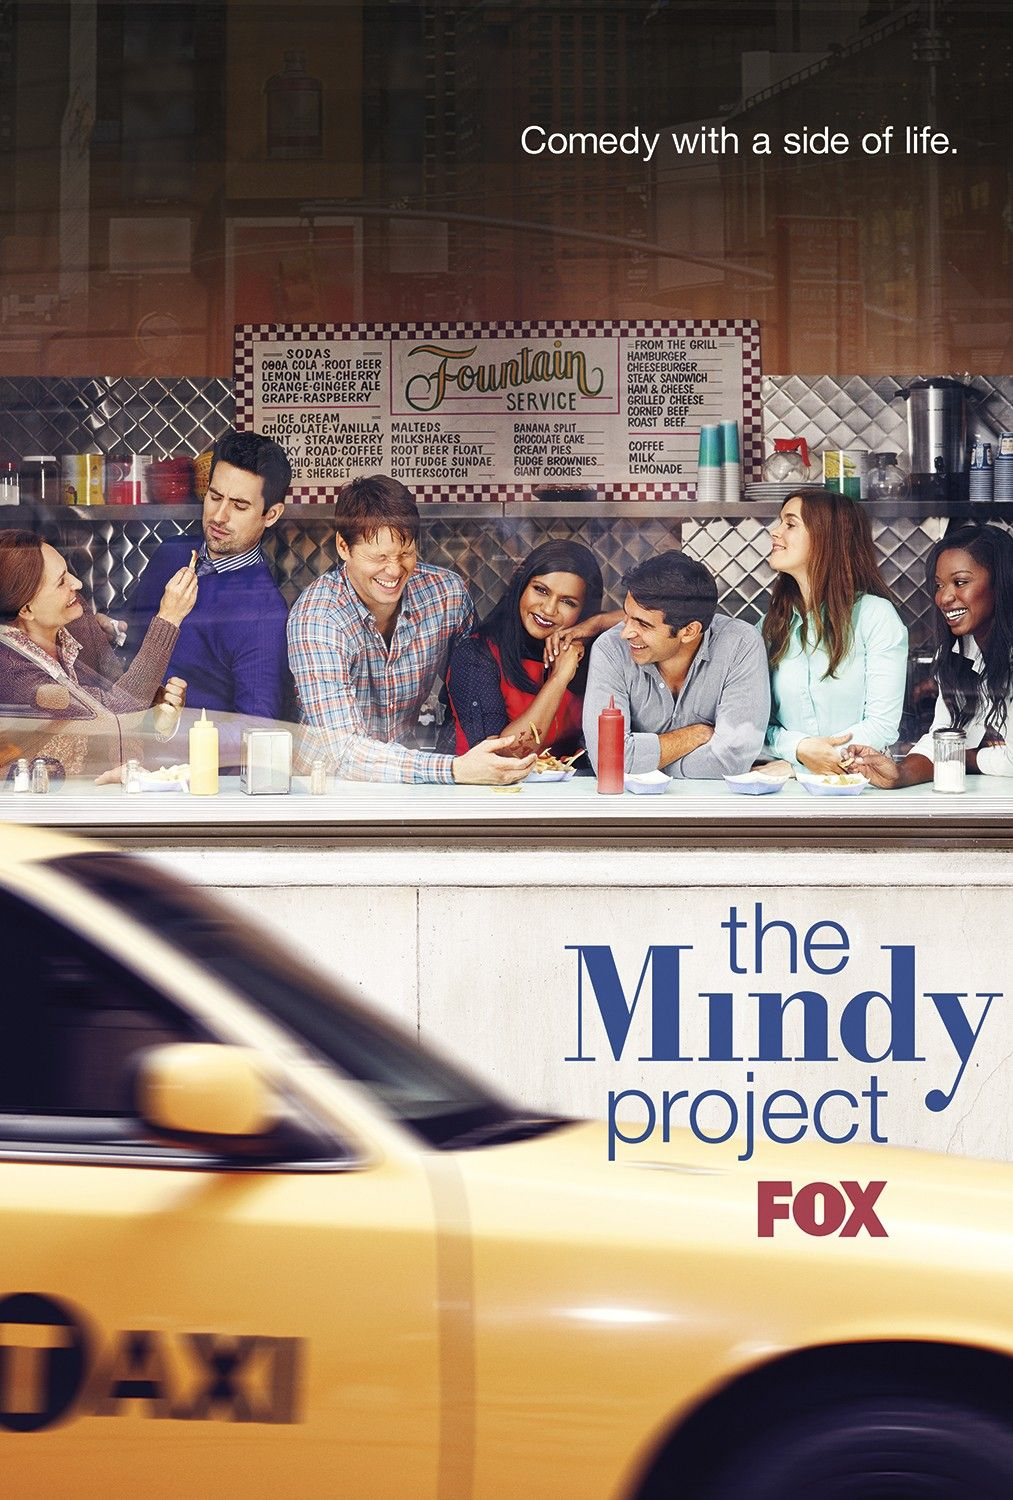 the mindy project  i recently marathoned the entire series